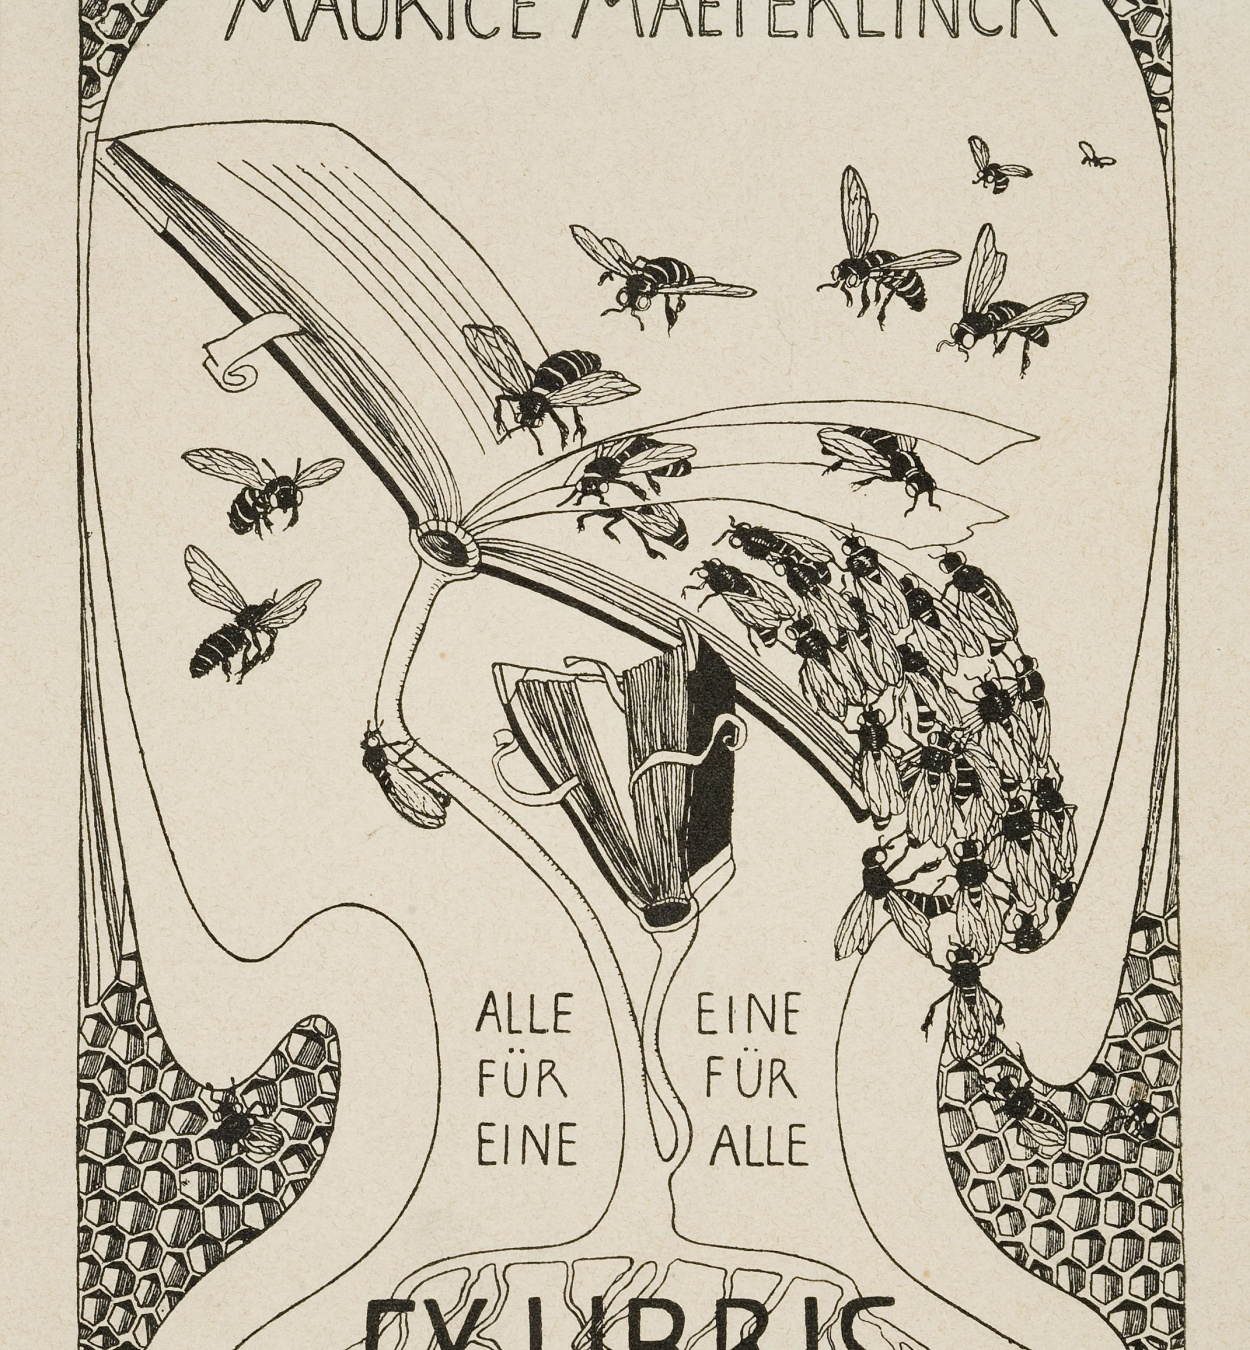 Mathilde Ade - Maurice Maeterlinck book-plate - Circa 1902